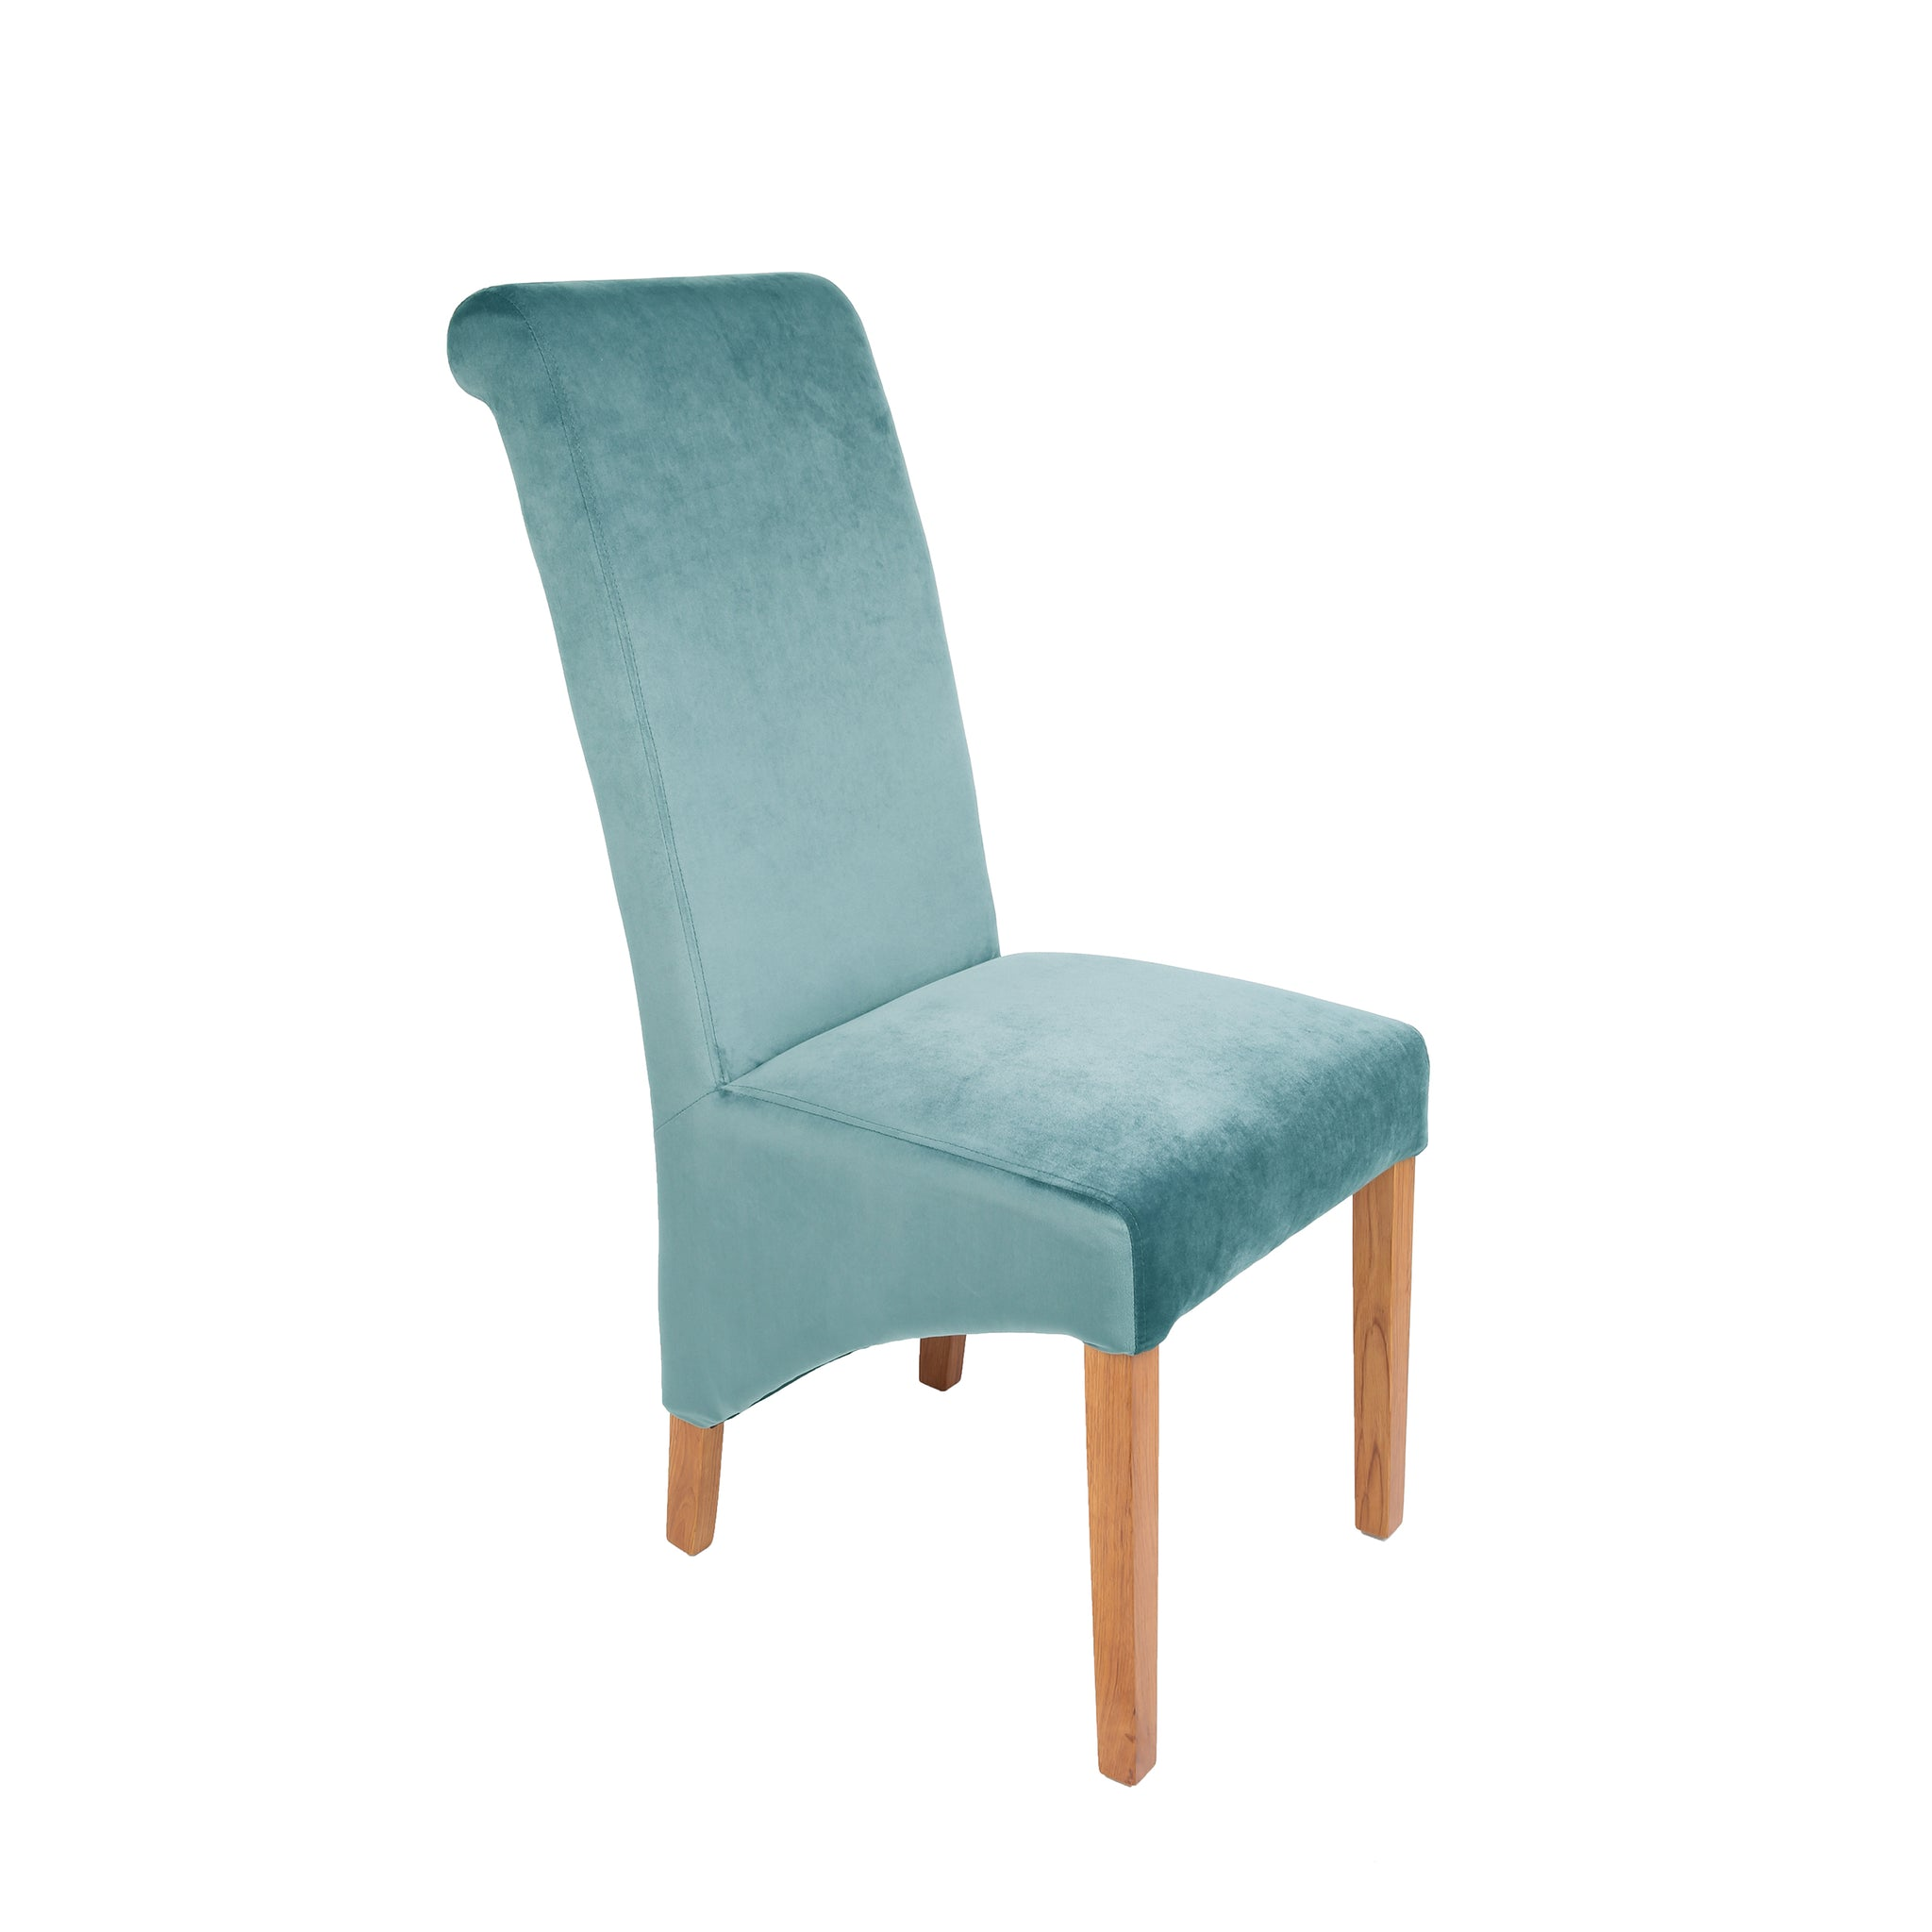 Home Plus Furniture: Rhianna Velvet Button Back Dining Chair